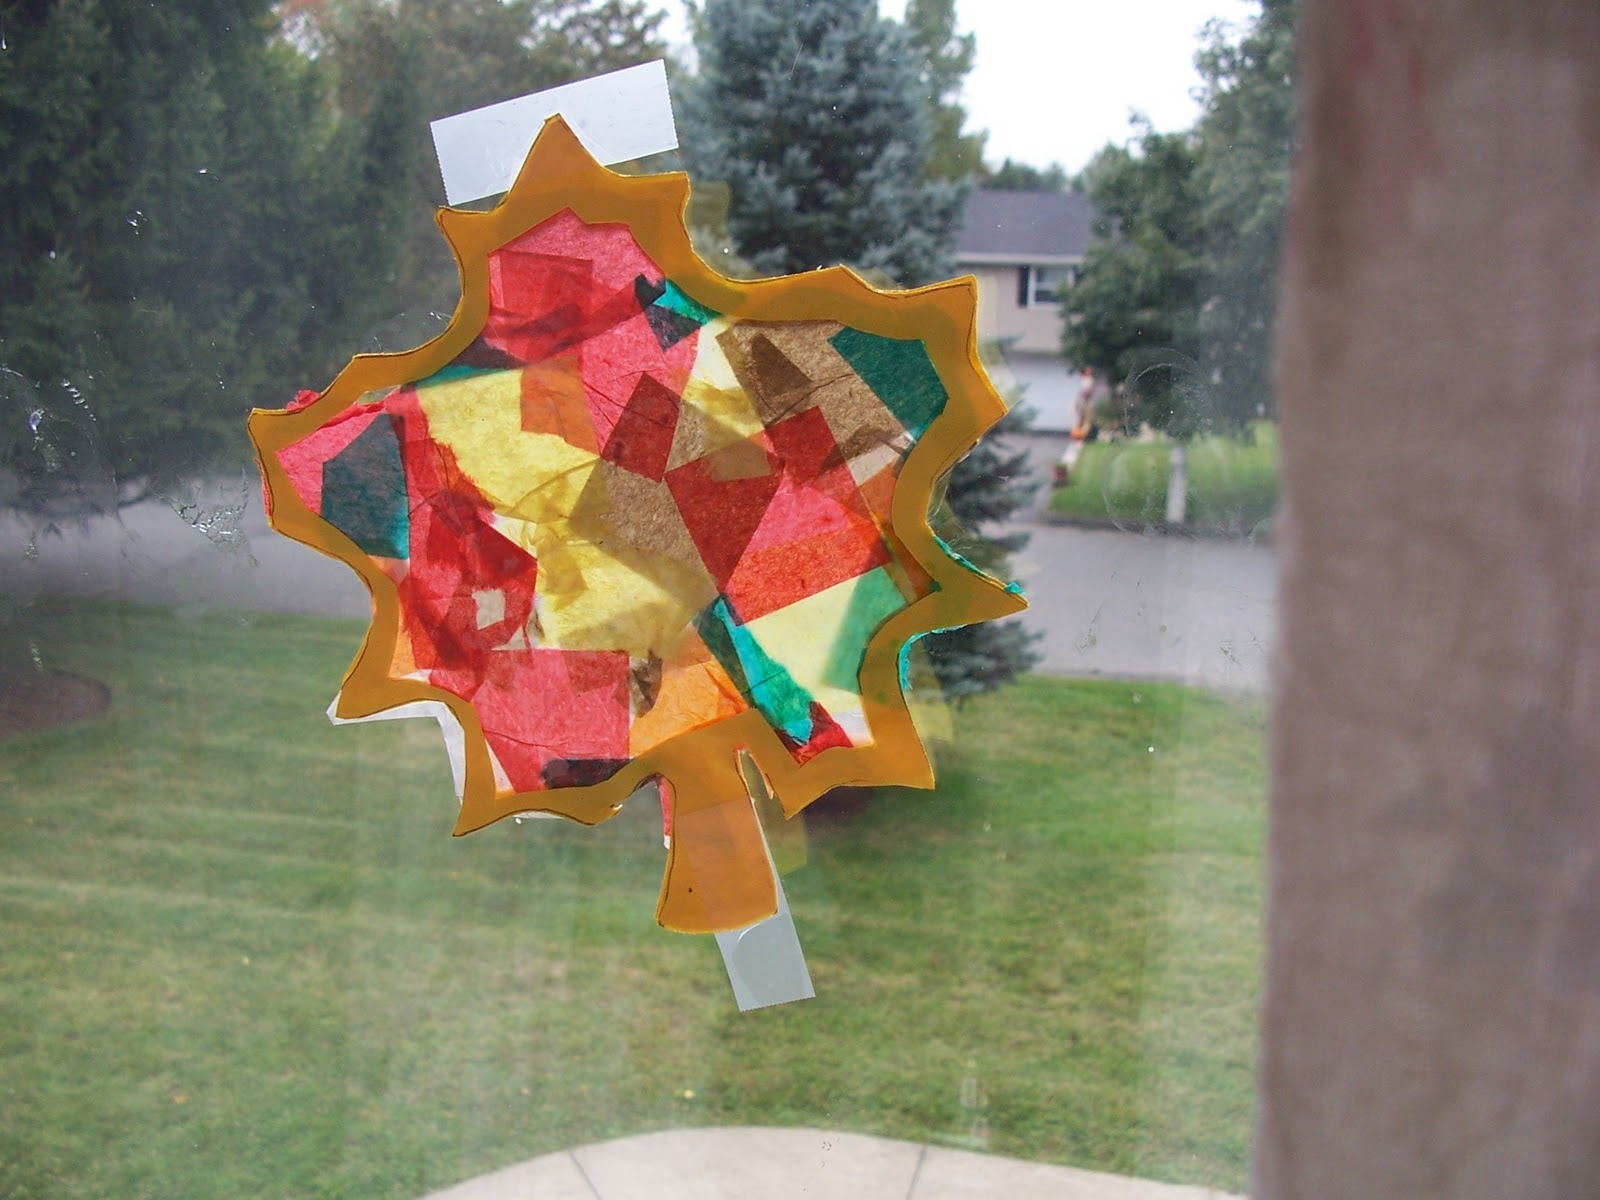 Tear fall colored construction paper into small pieces and glue - Have Child Rip Tissue Paper Into Small Pieces While He Or She Is Doing That Cut The Leaves You Need Two For Each Leaf And Then Leaving A Frame